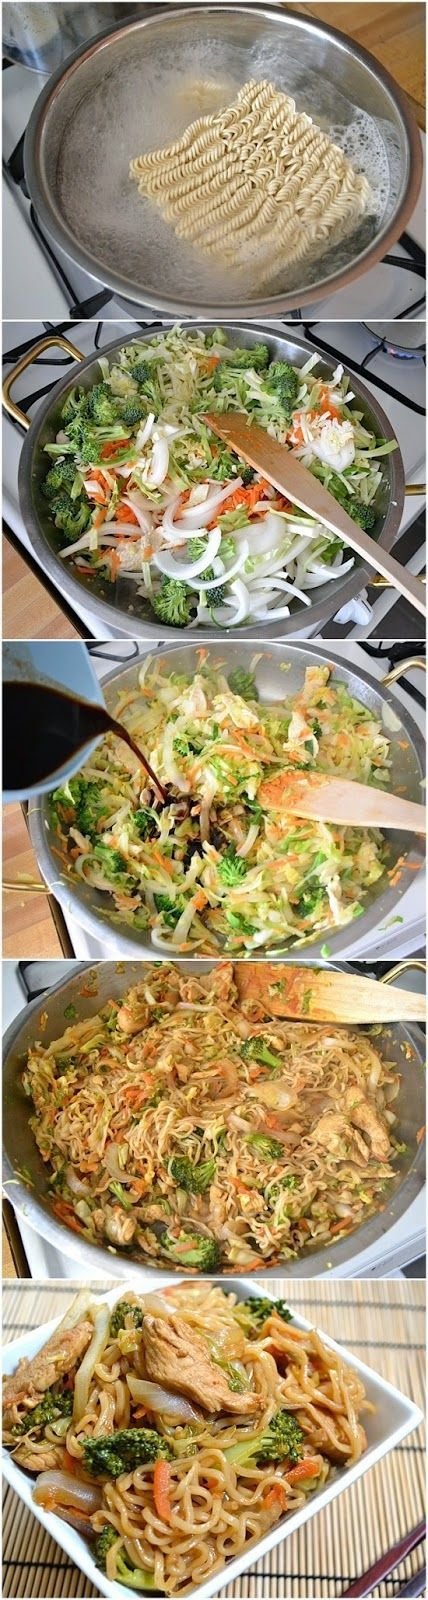 How To Make Chicken Yakisoba | Food is my friend